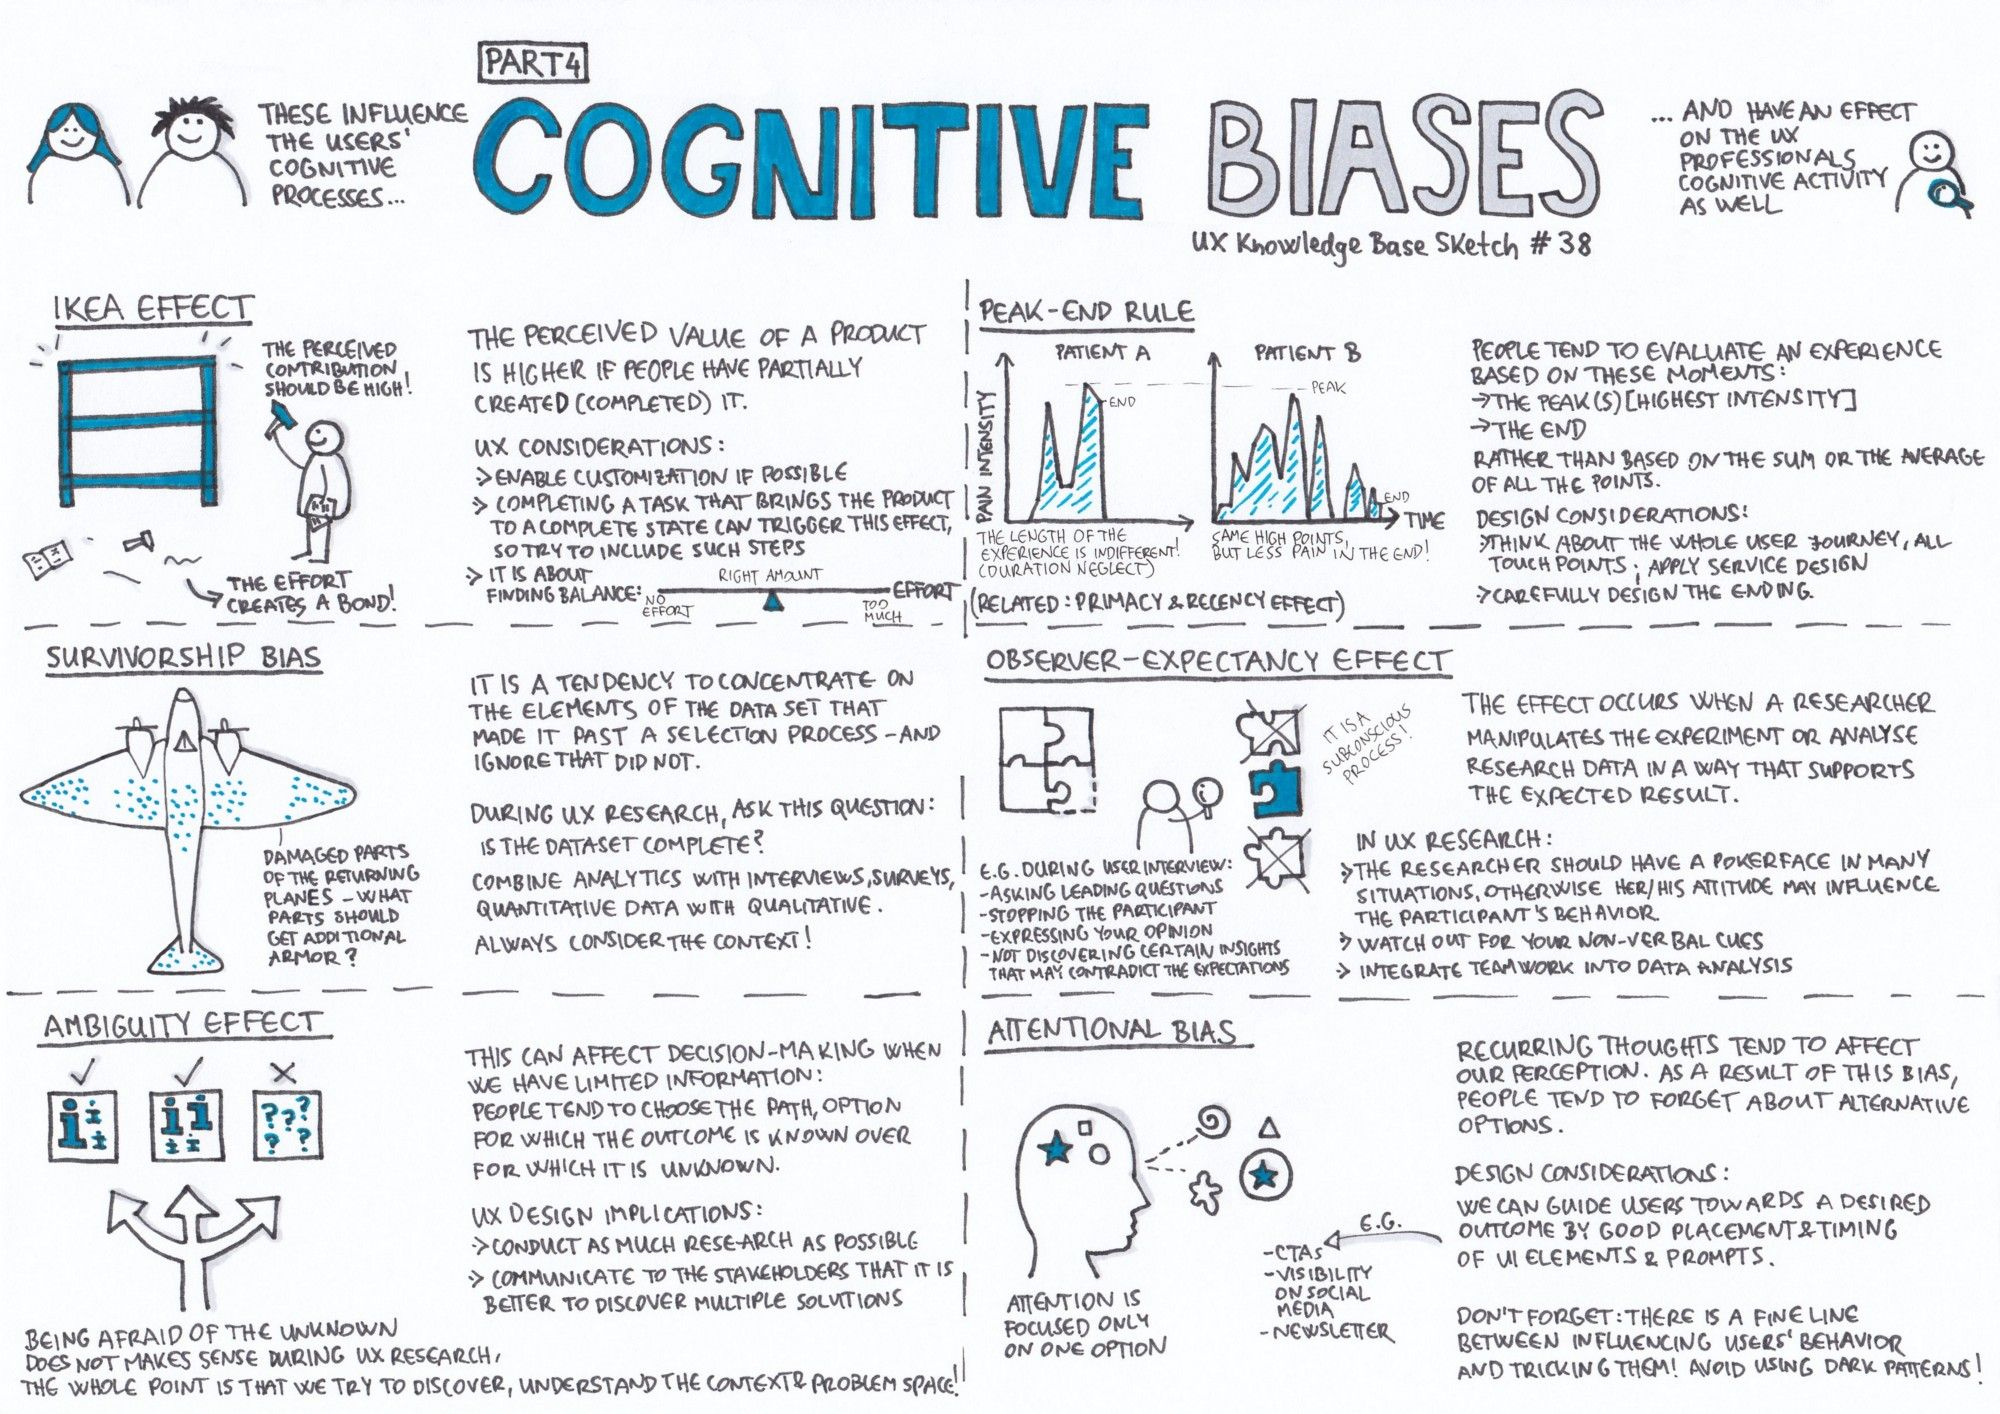 Cognitive Bia Part 4 Ux Knowledge Base Sketch Critical Thinking A Decision Theoretic Approach For Interface Agent Development Phd Dissertation